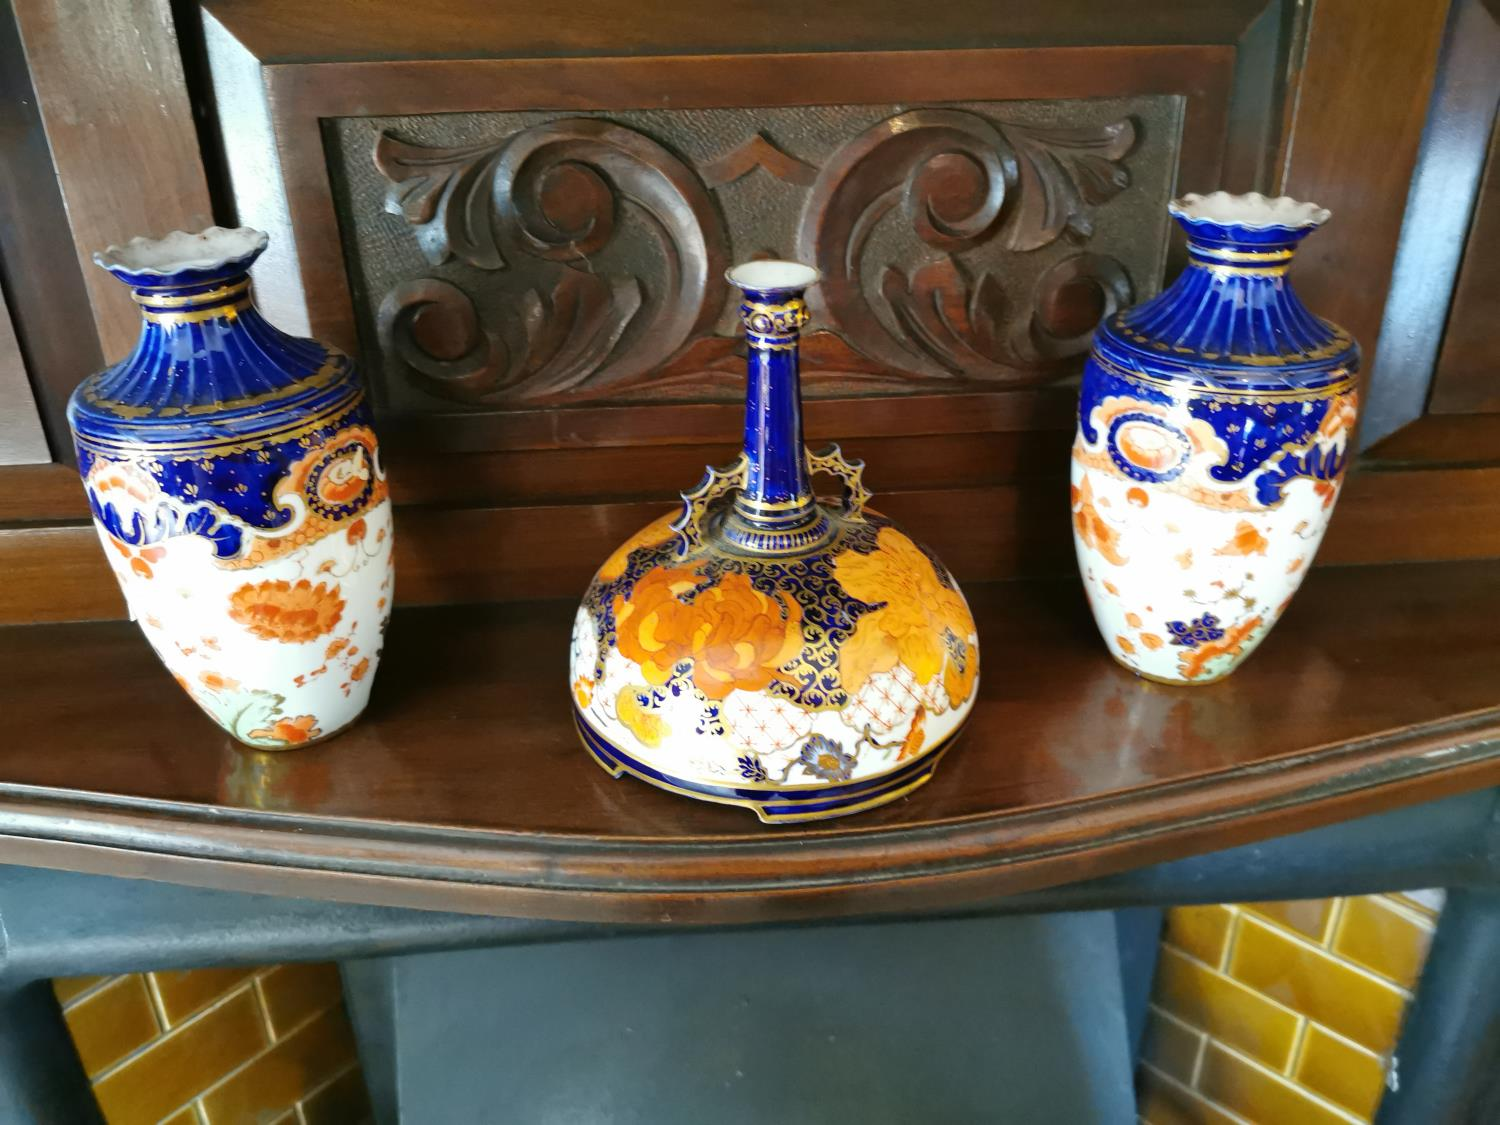 Pair of vases and R scent bottle